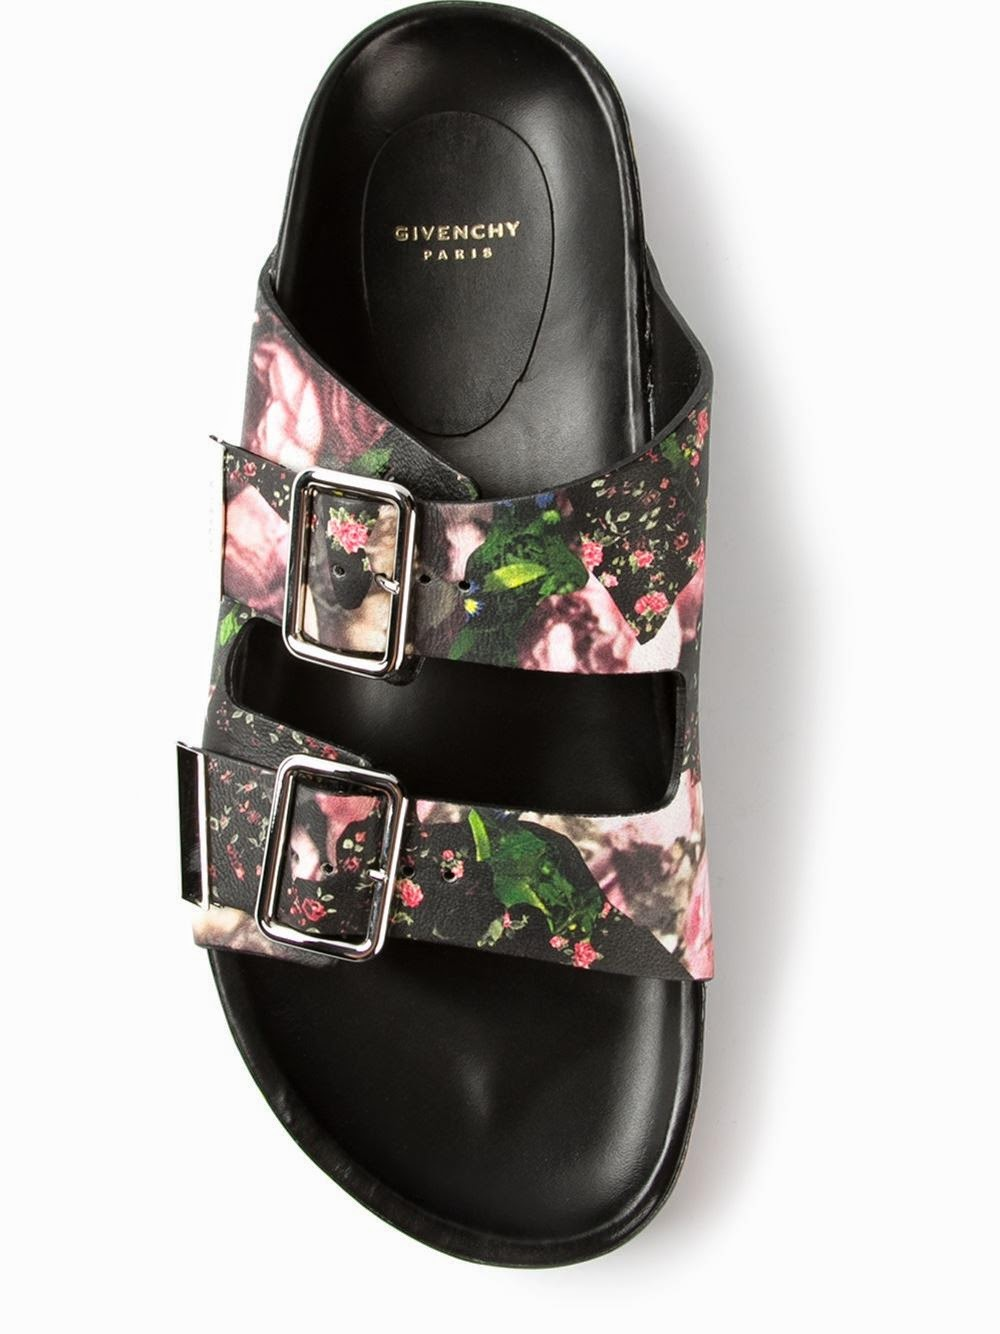 Black Nappa leather sandal from Givenchy